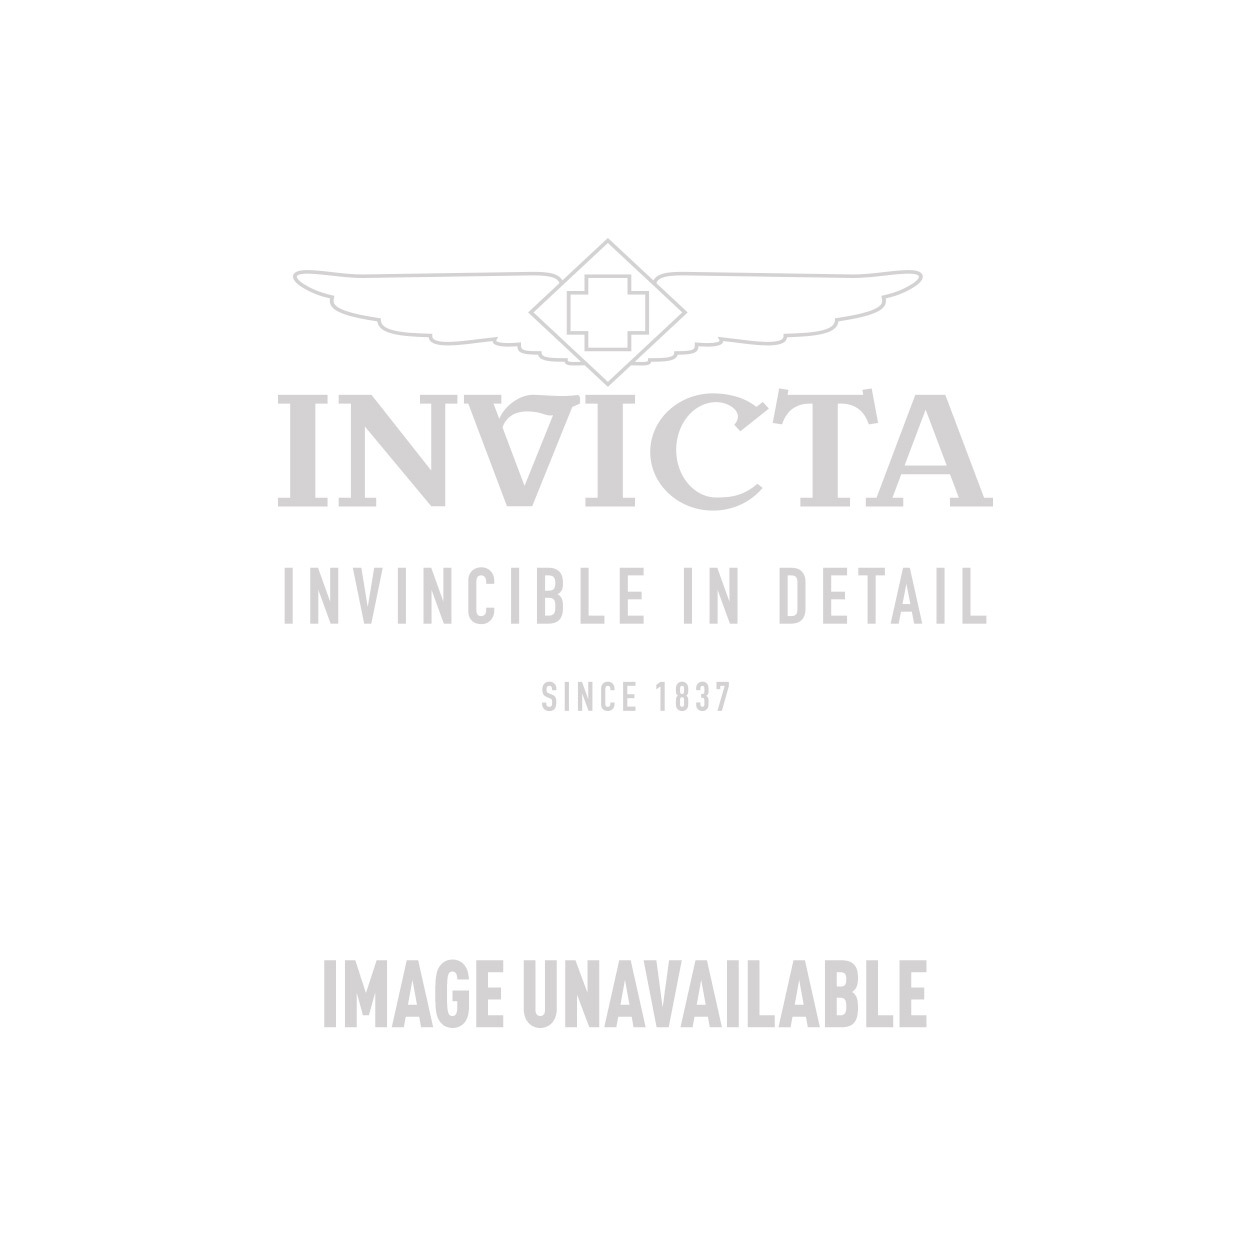 Invicta Specialty Swiss Movement Quartz Watch - Stainless Steel case Stainless Steel band - Model 14586